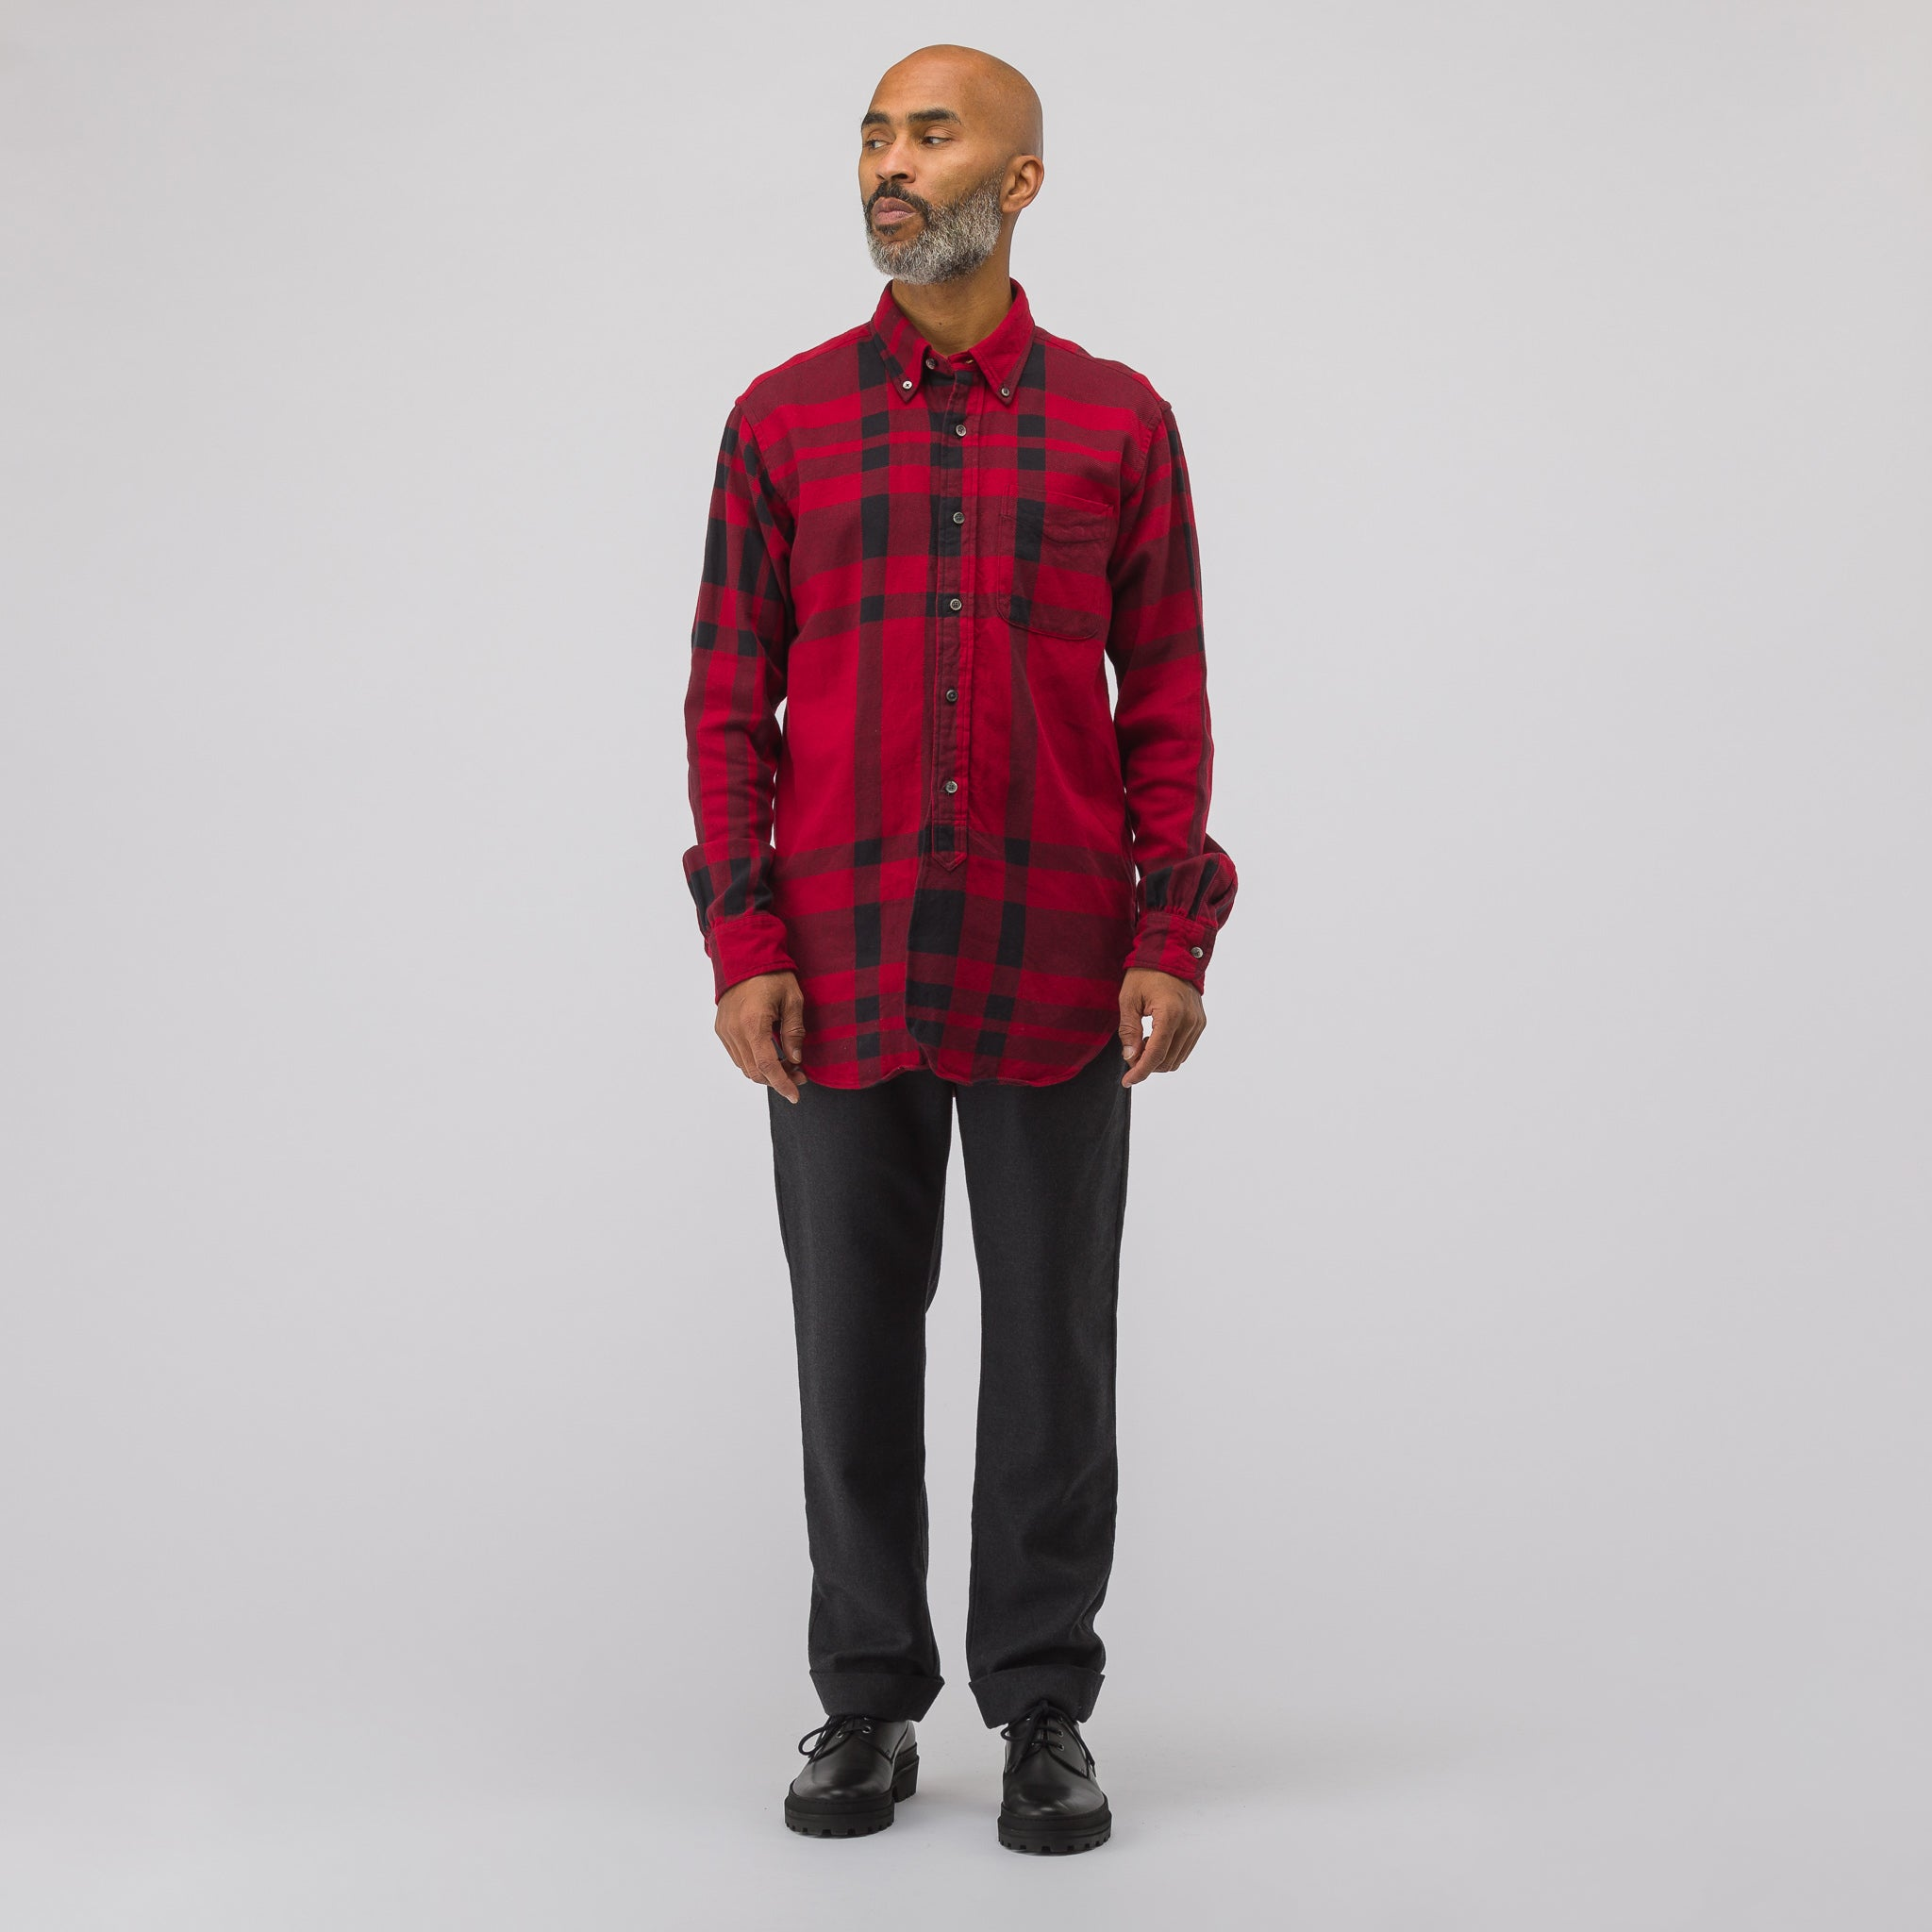 19th Century BD Shirt Plaid in Red/Black